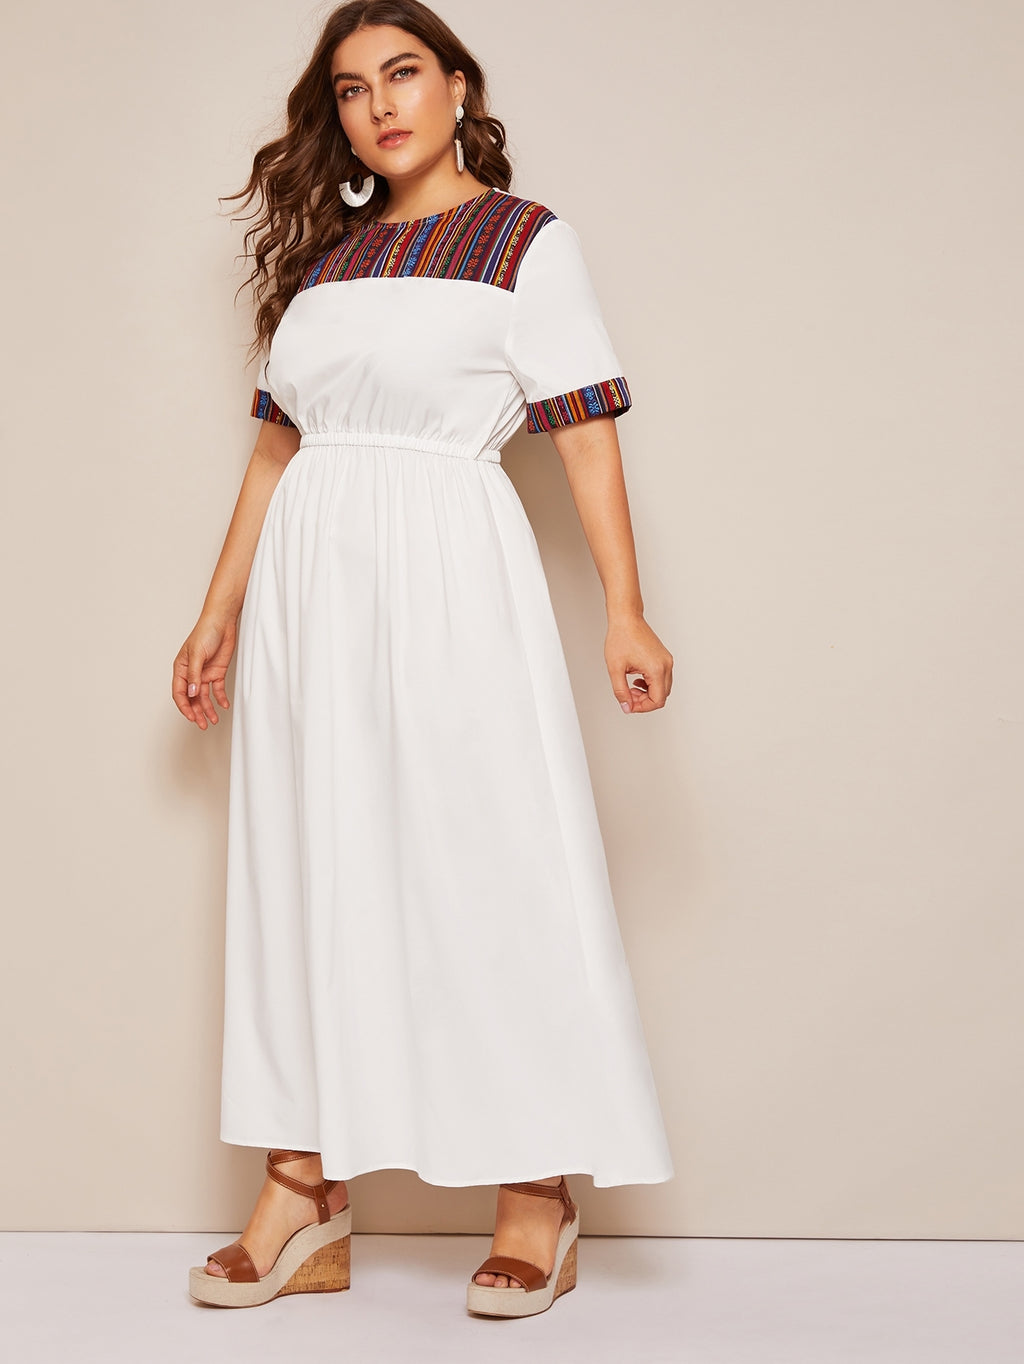 Plus Size Colorful Contrast Elastic Waist Dress